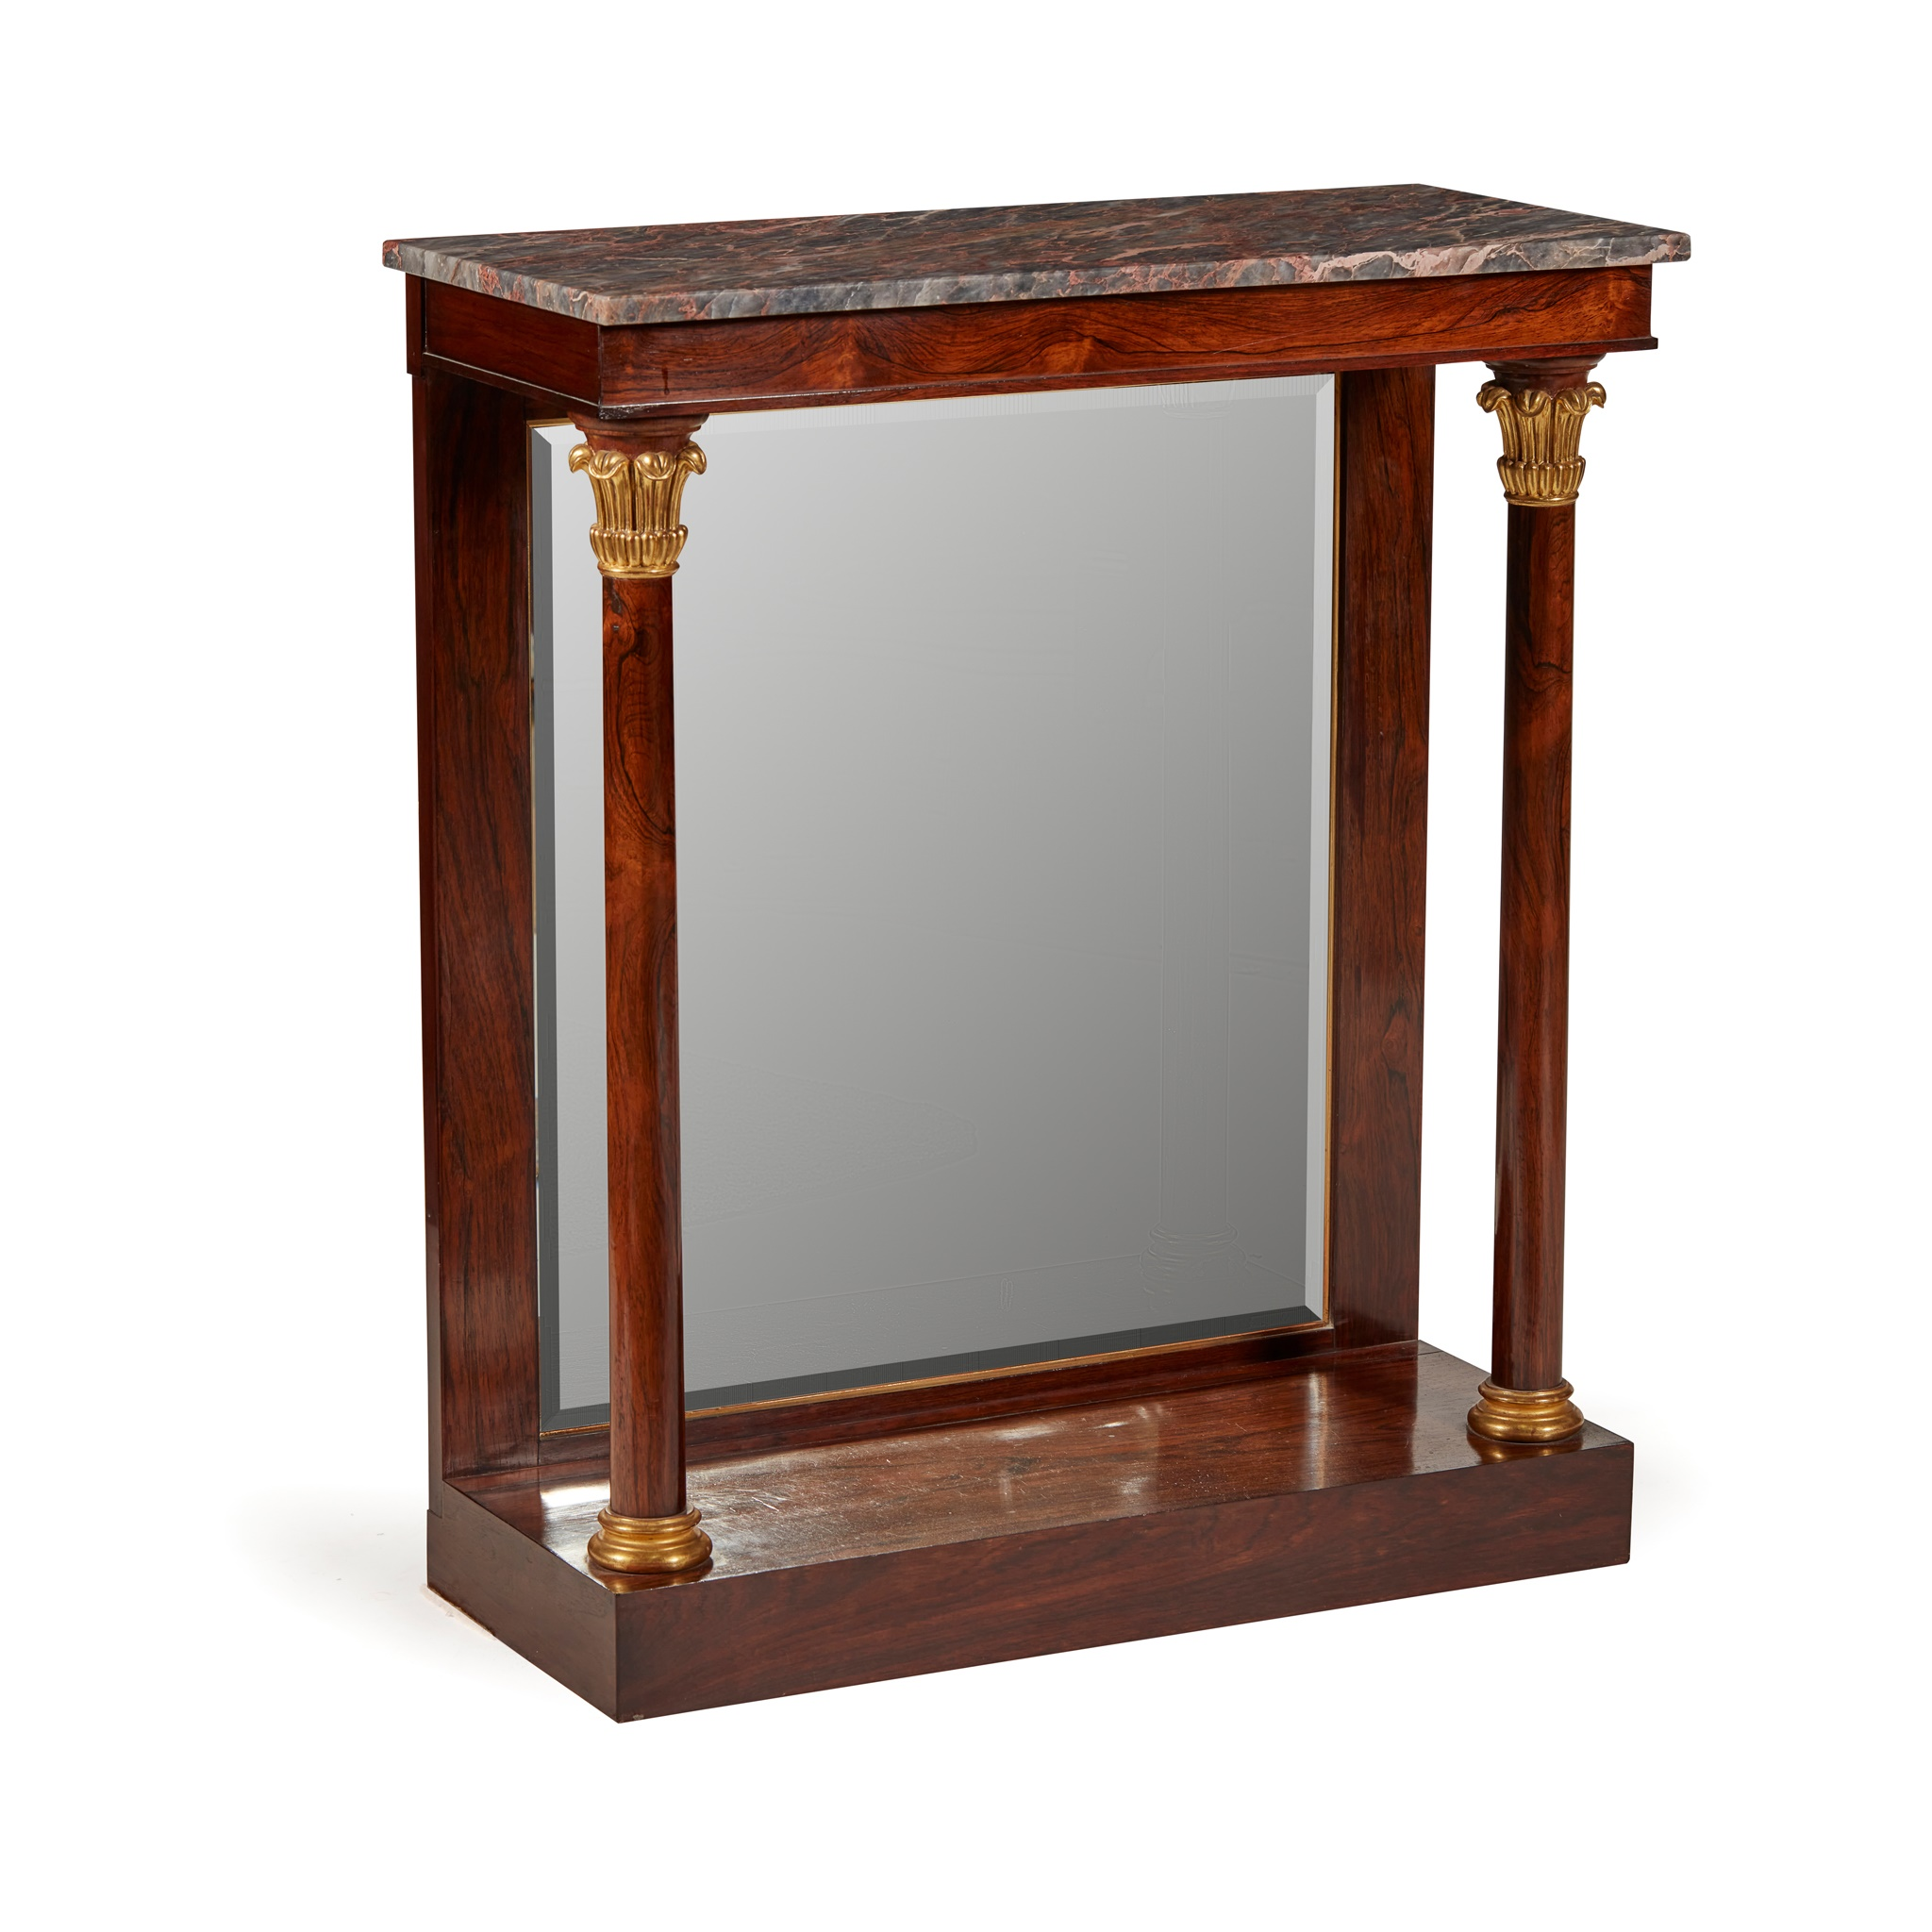 Y REGENCY ROSEWOOD AND PARCEL GILT CONSOLE TABLE EARLY 19TH CENTURY